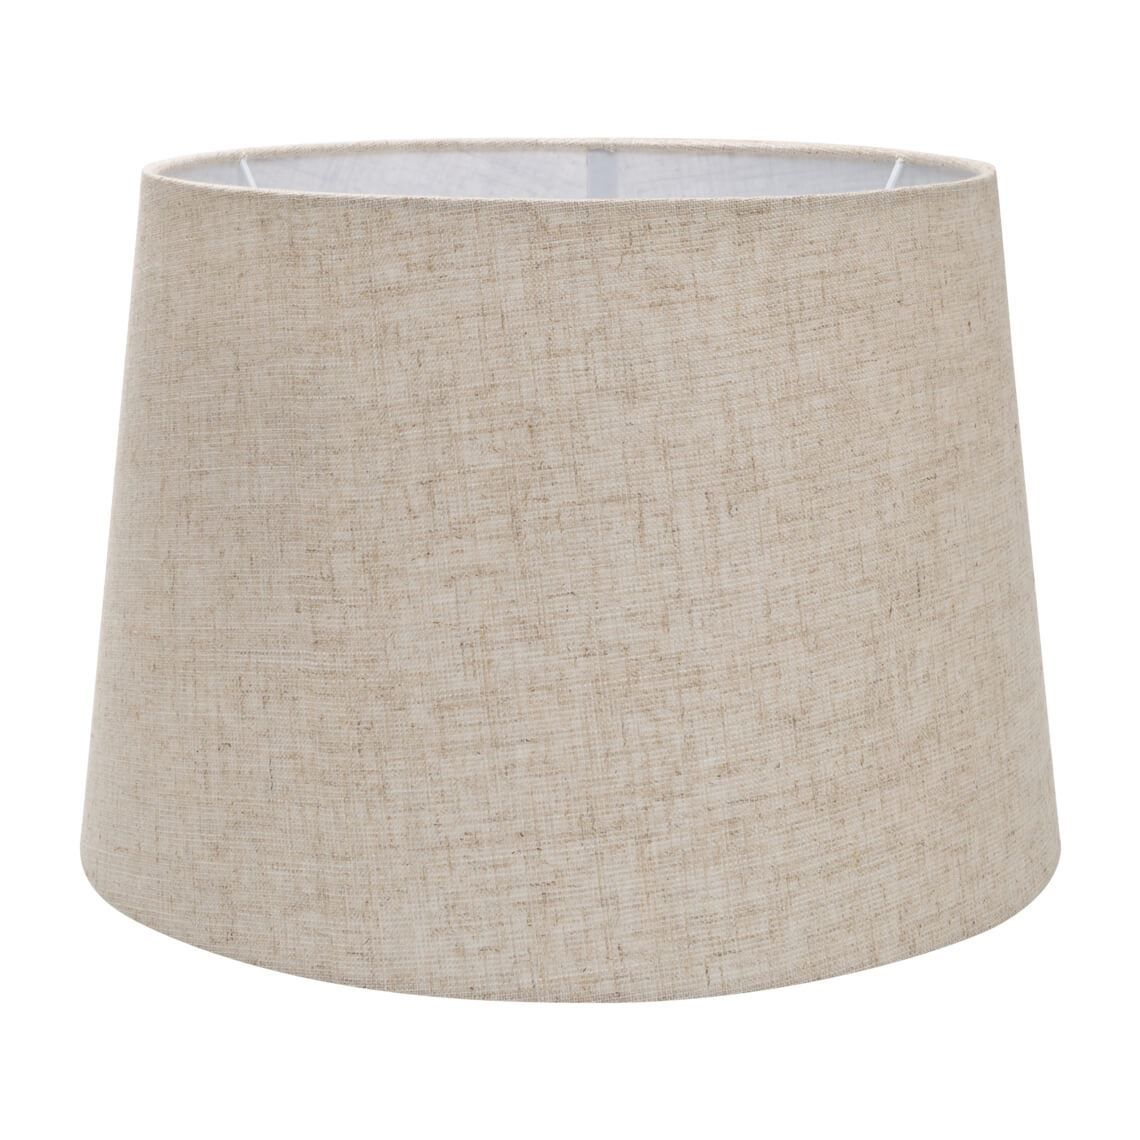 Sand 46x26cm Tapered Shade Linen Lamp Shades Floor Lamp Shades Rustic Lamp Shades